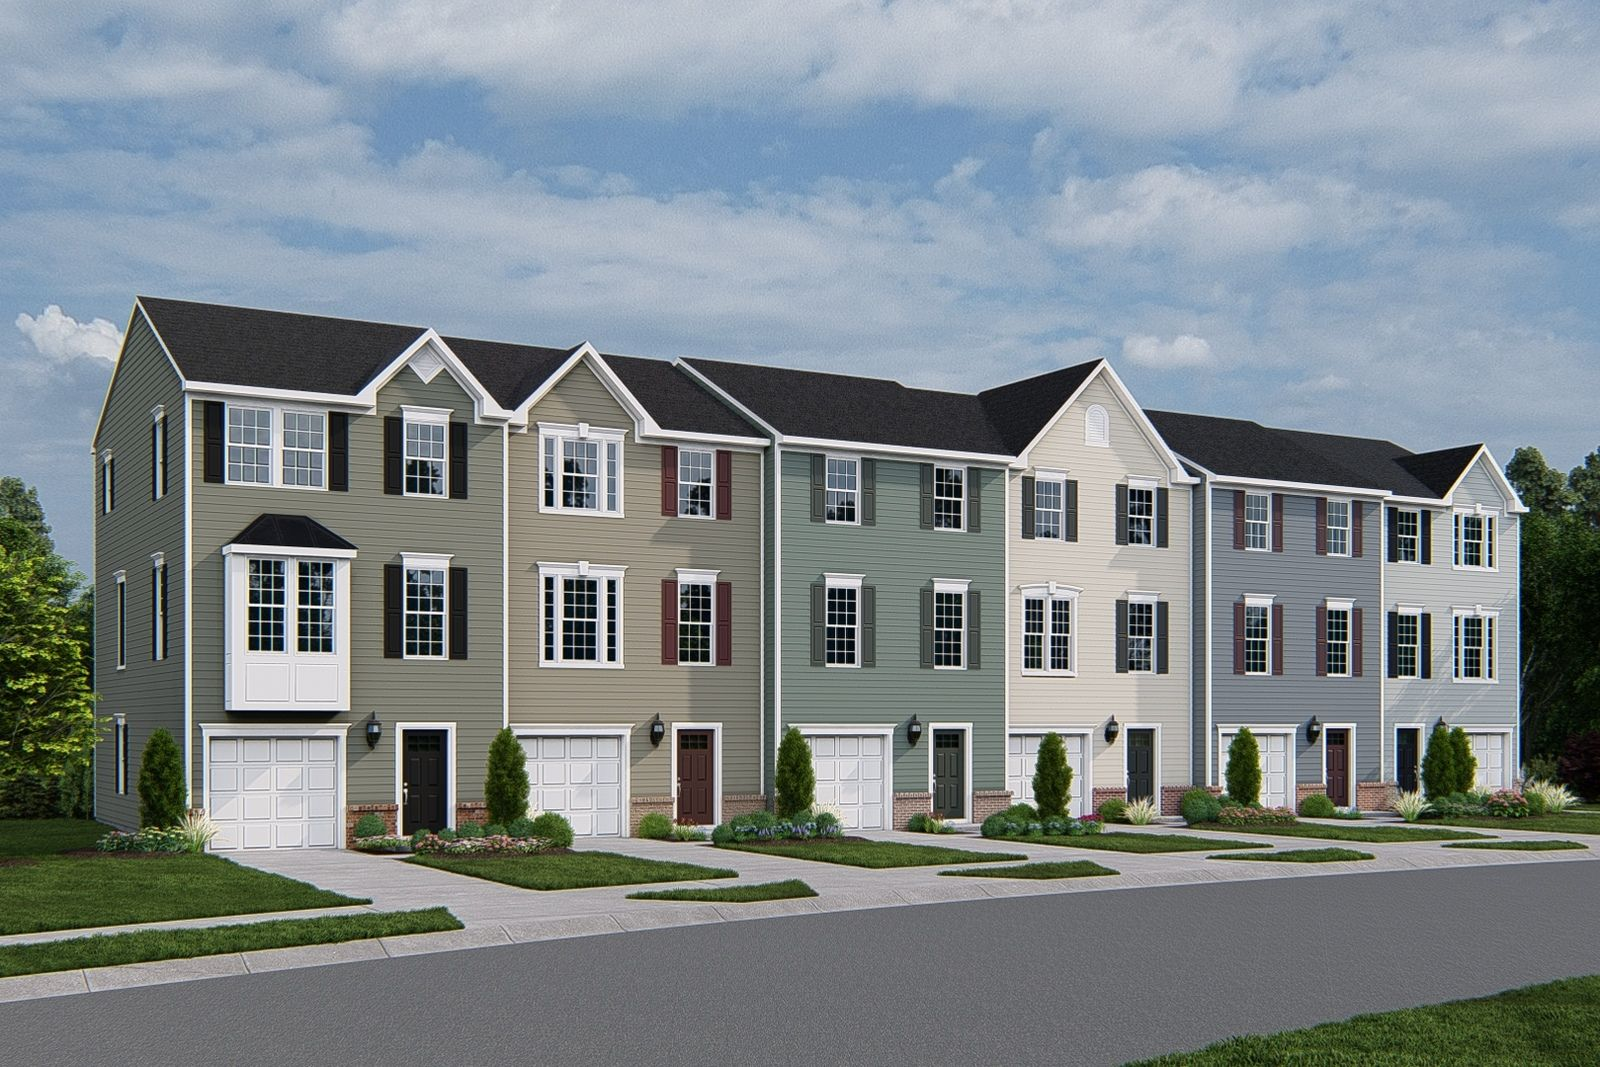 Affordable 3-story townhomes close to Duke, RTP & UNC. From the upper $200s:Lowest priced new 3-story townhomes with 1-car garages & wooded homesites,join the VIP list!